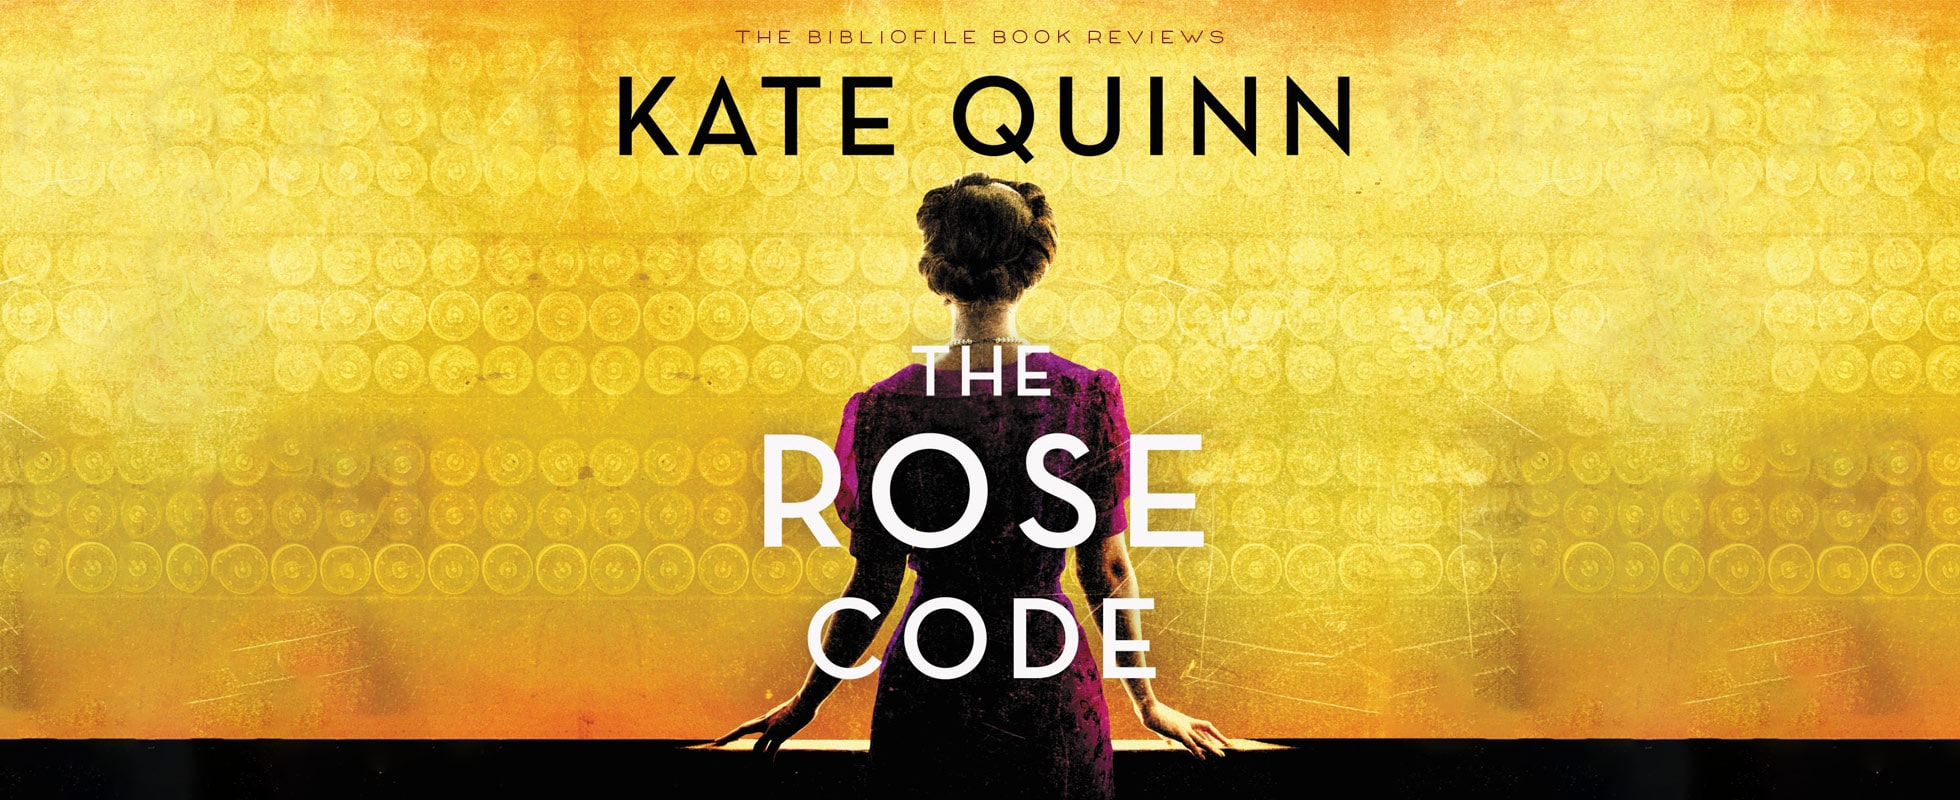 The Rose Code by Kate Quinn summary book review discussion questions